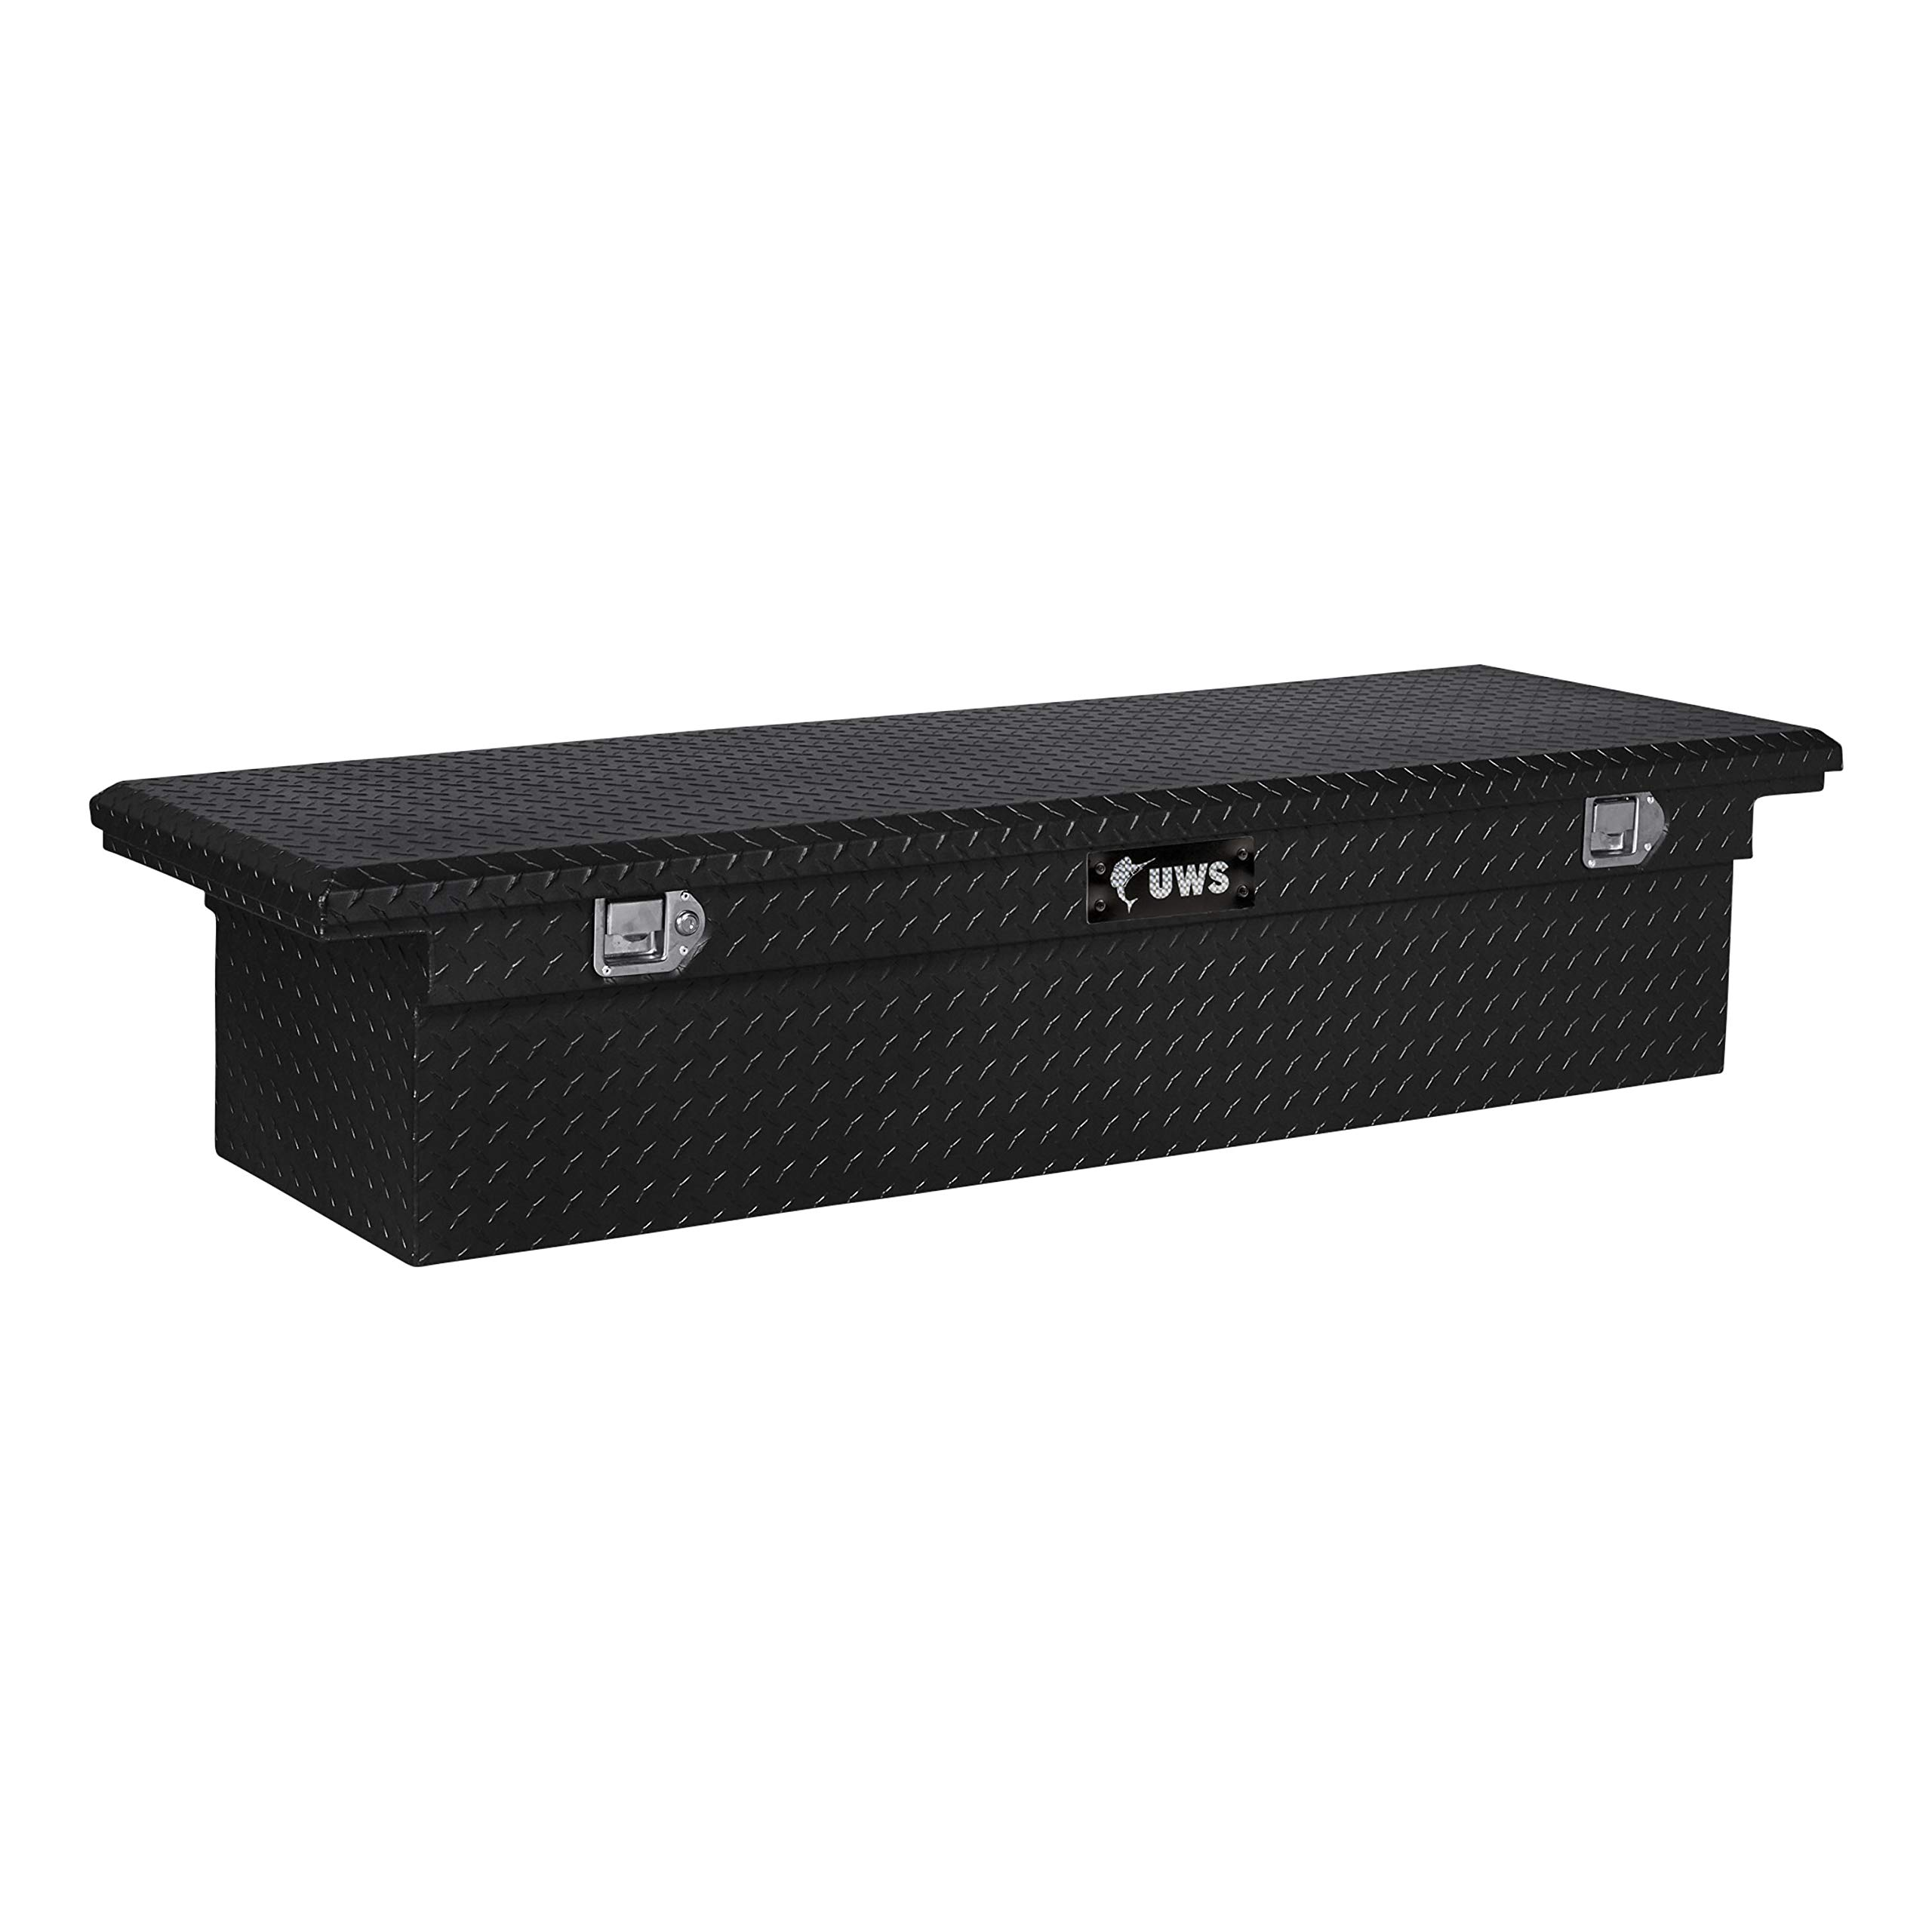 UWS TBS-60-A-LP 60 Single Lid Low Profile Aluminum Toolbox with Beveled Insulated Angled Crossover Toolbox